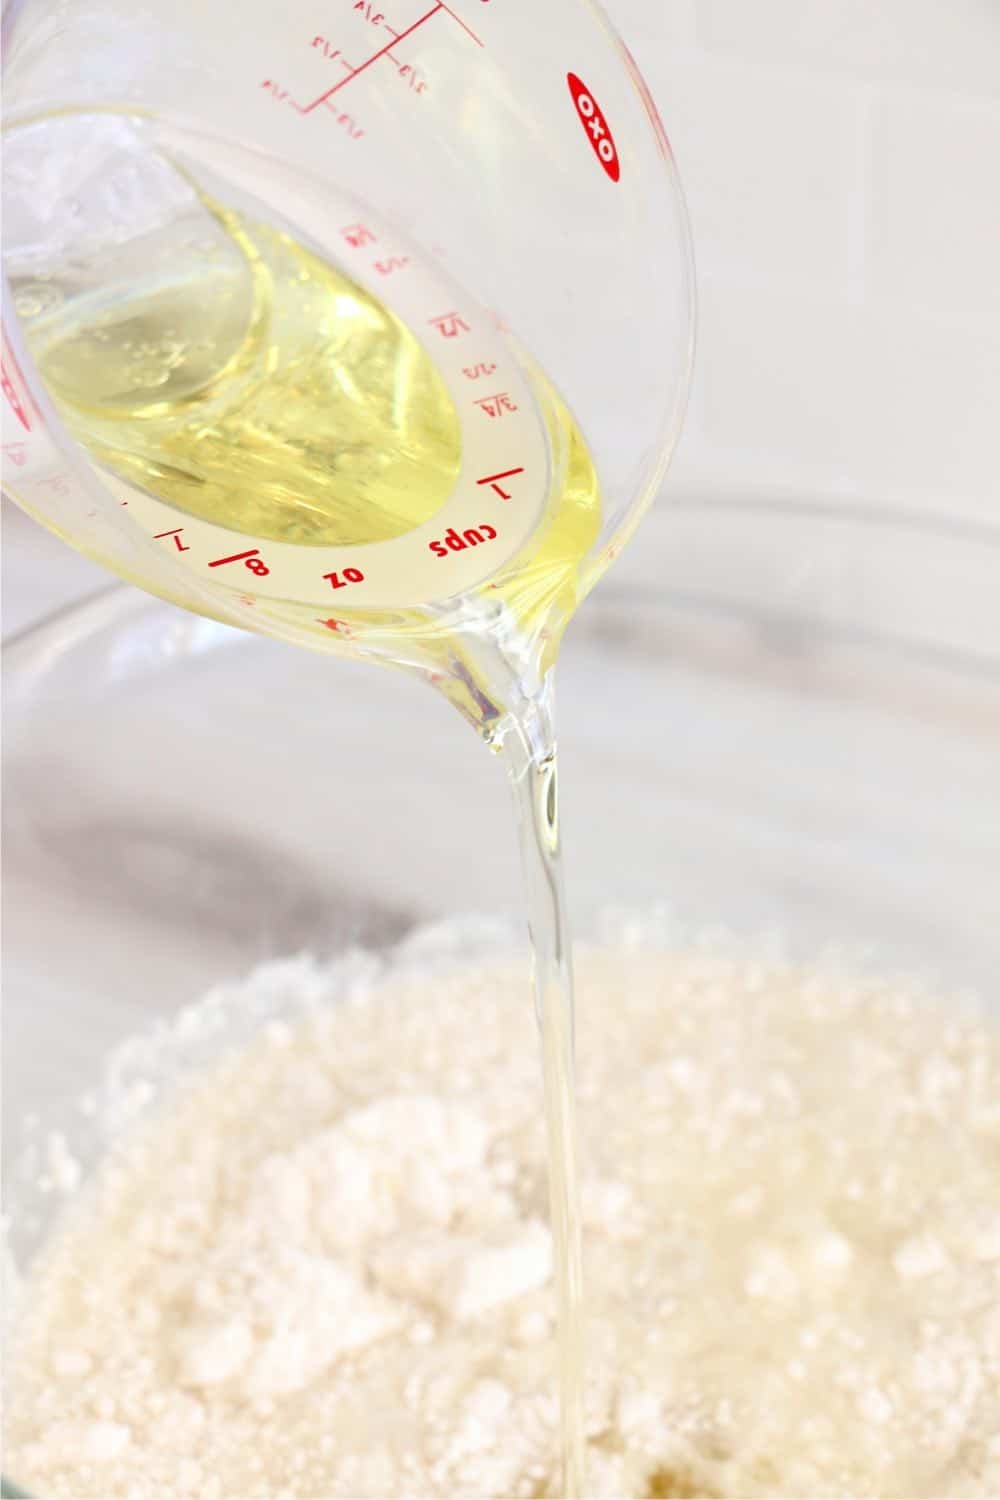 Adding the ingredients together - oil into cake mix